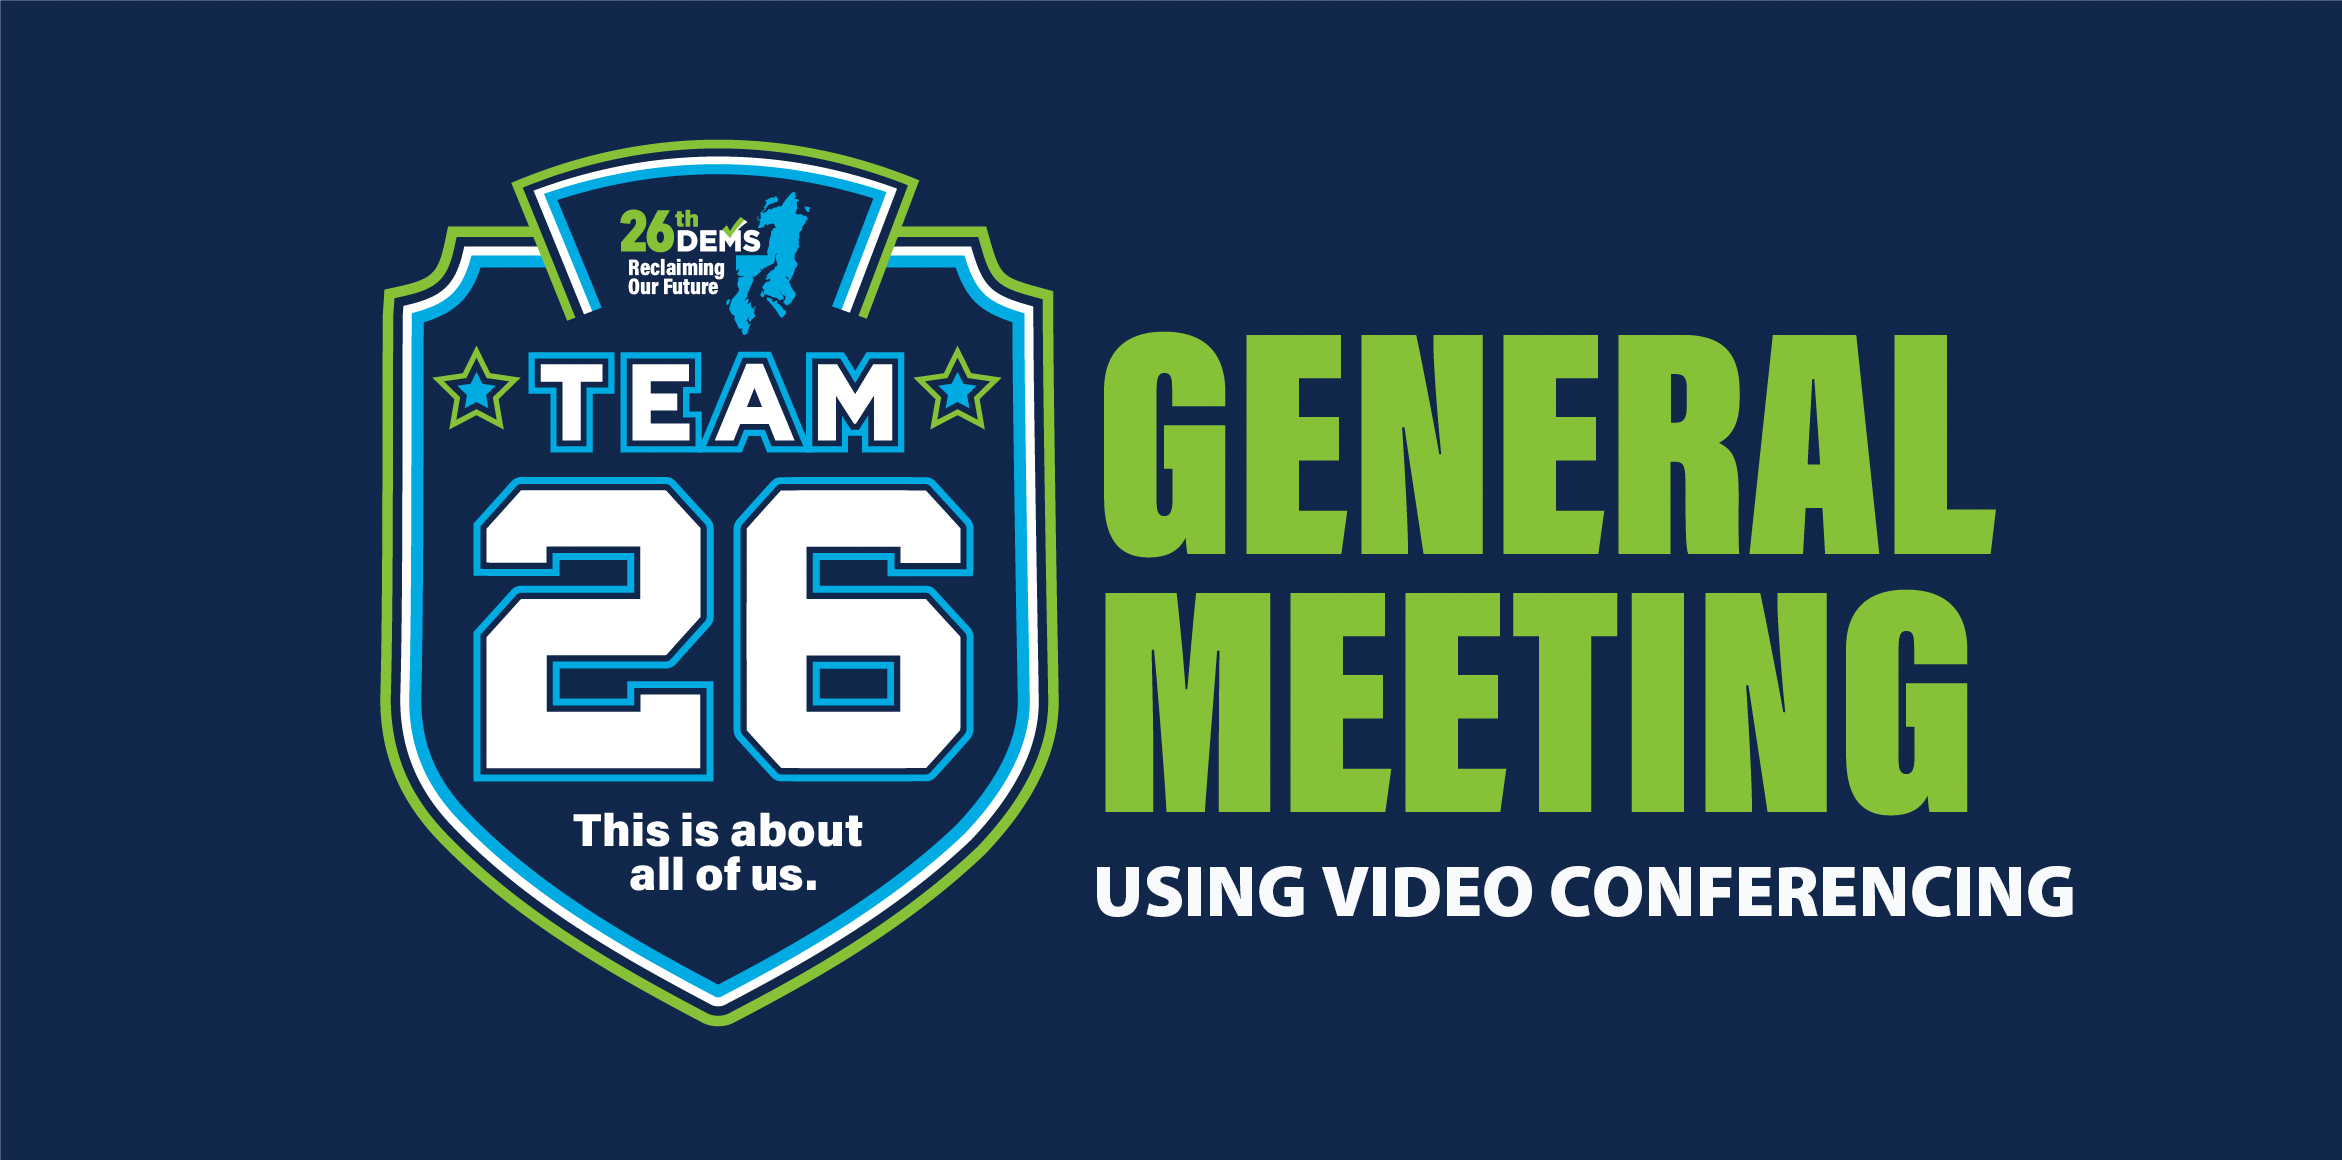 26th LD General Meeting: VIRTUAL